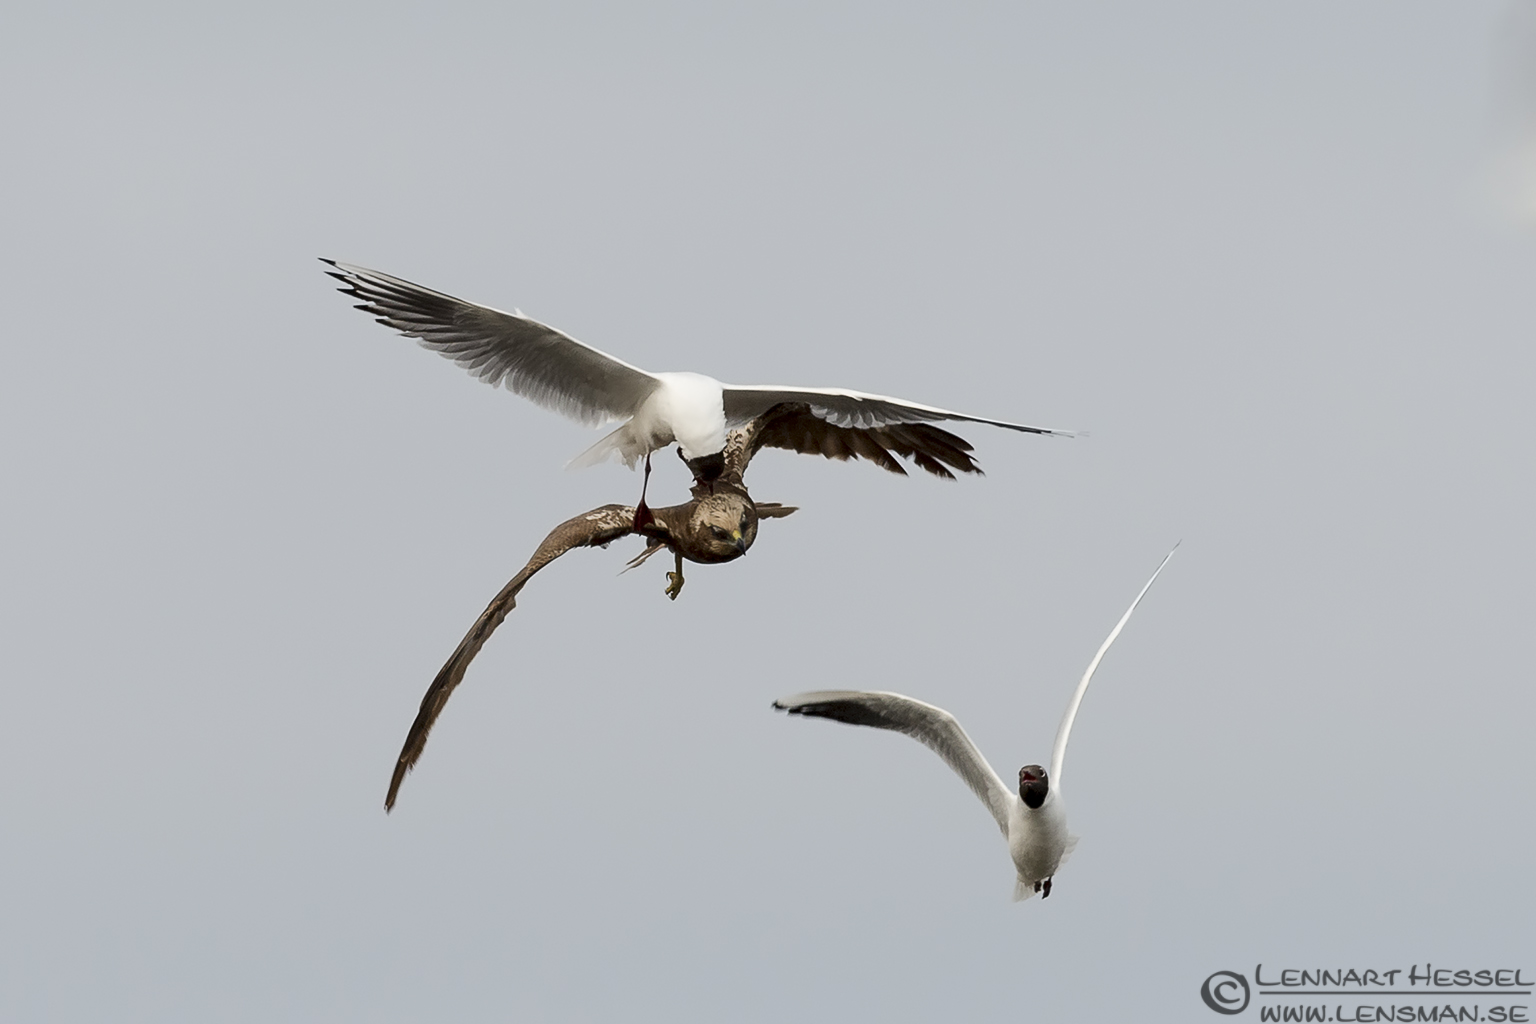 Black-headed Gulls attacking a female Marsh Harrier bearded